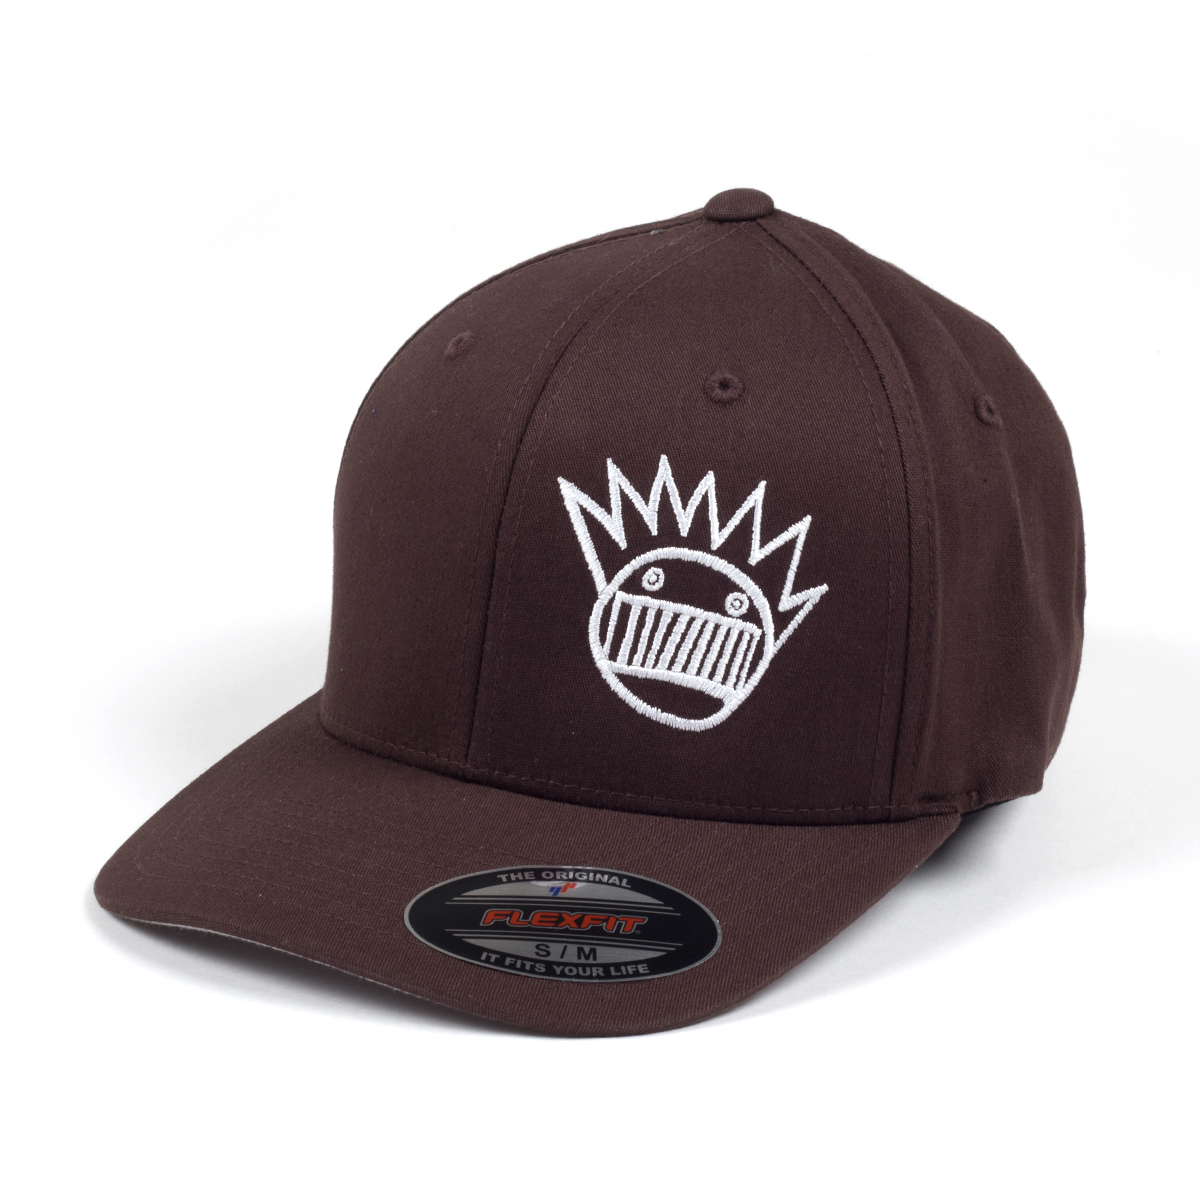 Boognish Brown Hat